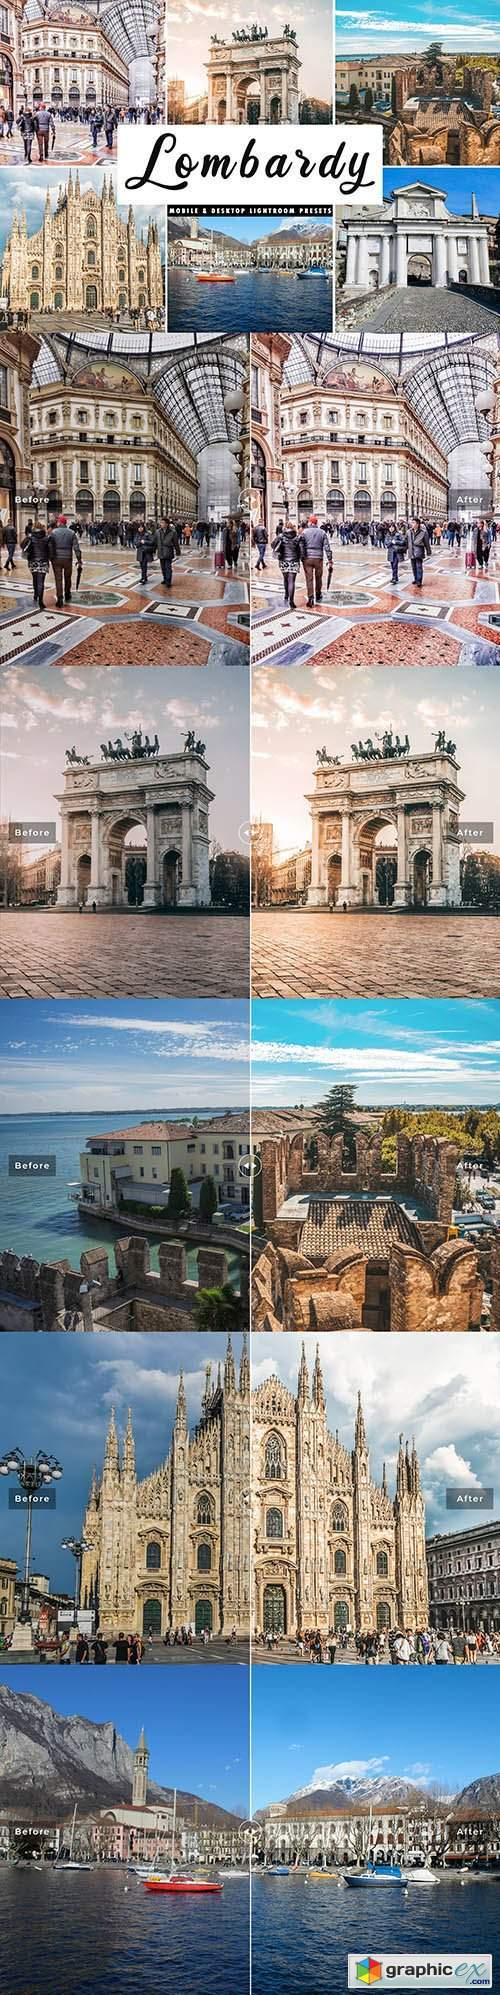 Lombardy Lightroom Presets Pack